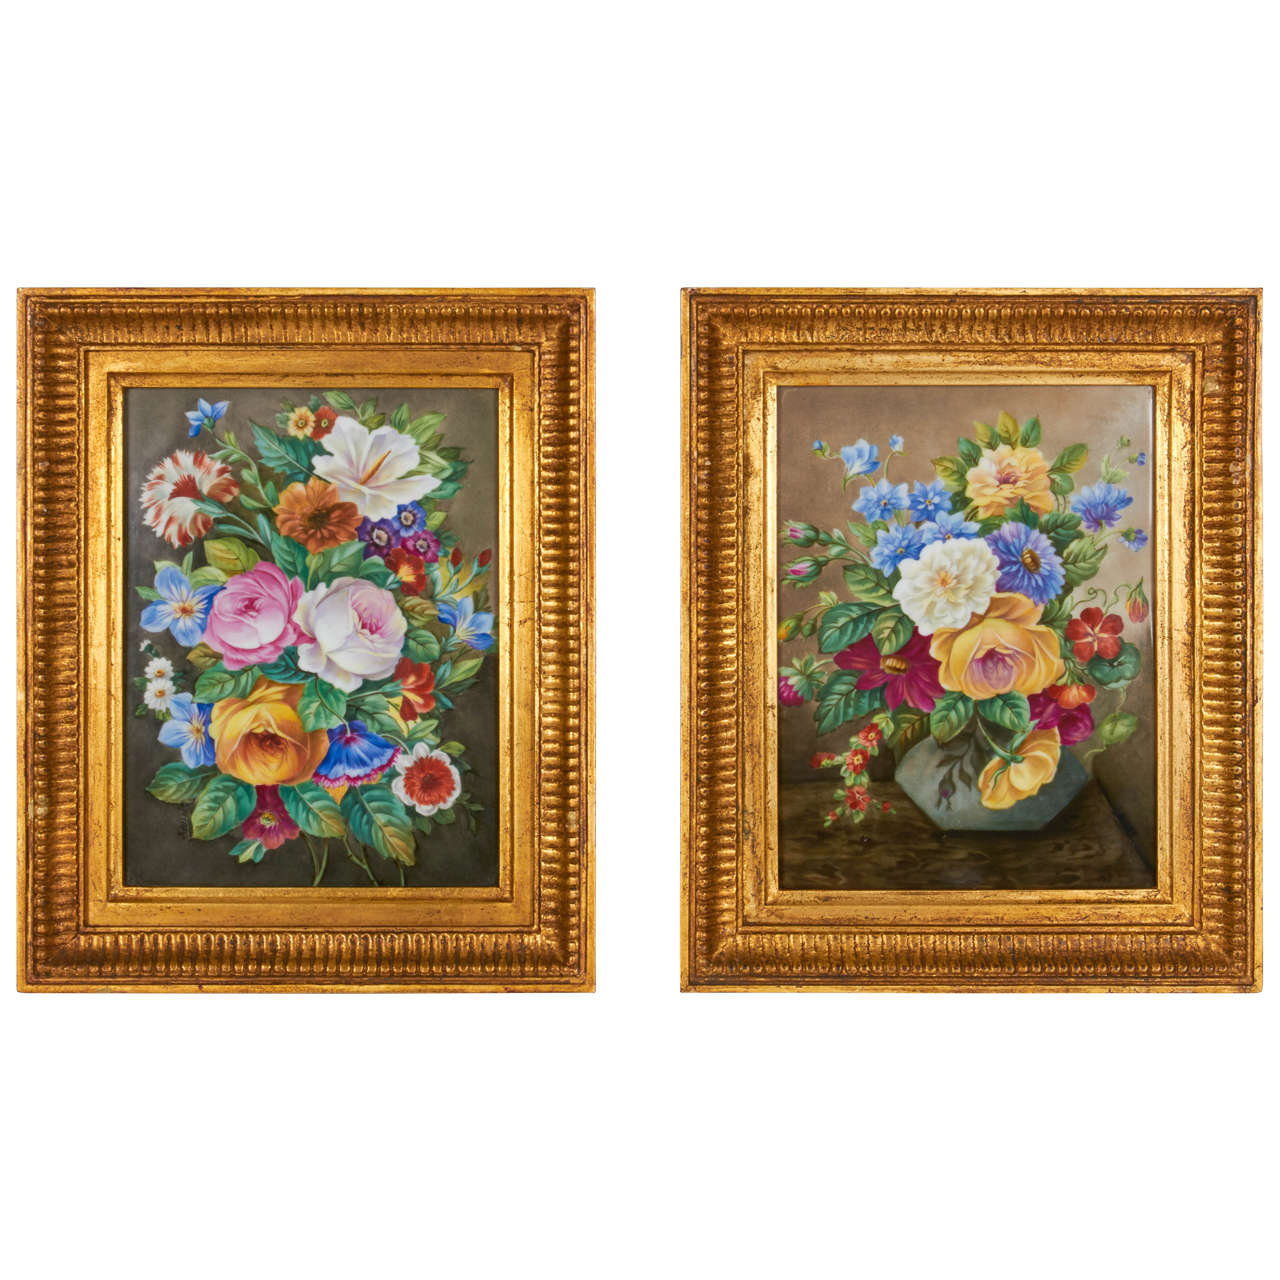 Pair of Hand-Painted Porcelain Plaques of Floral Still-Life Paintings